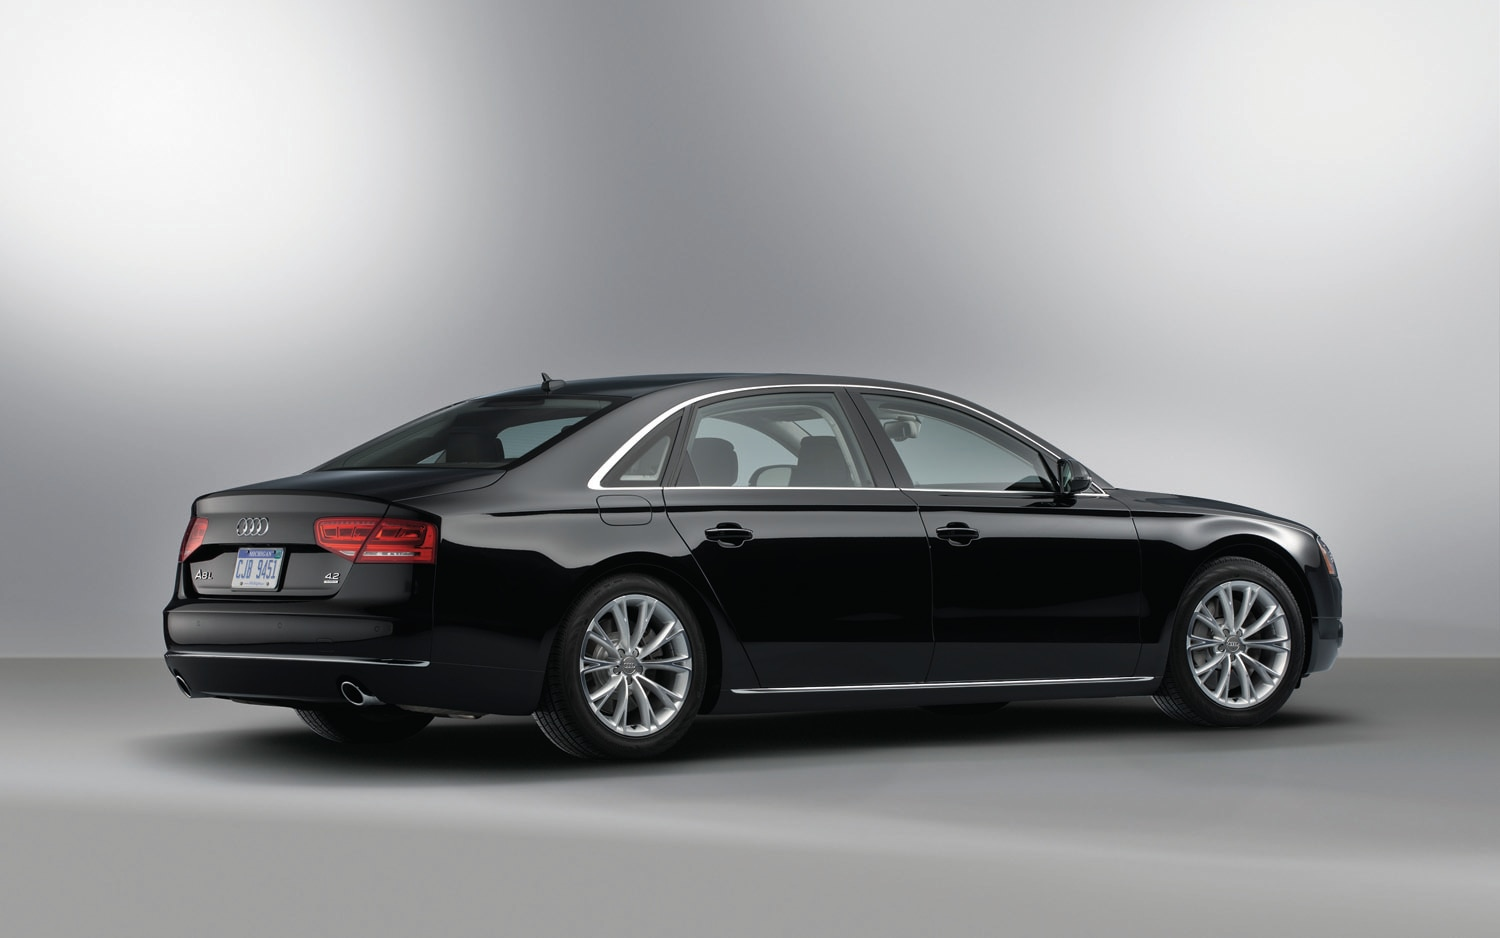 2012 Audi A8L Rear Three Quarter1